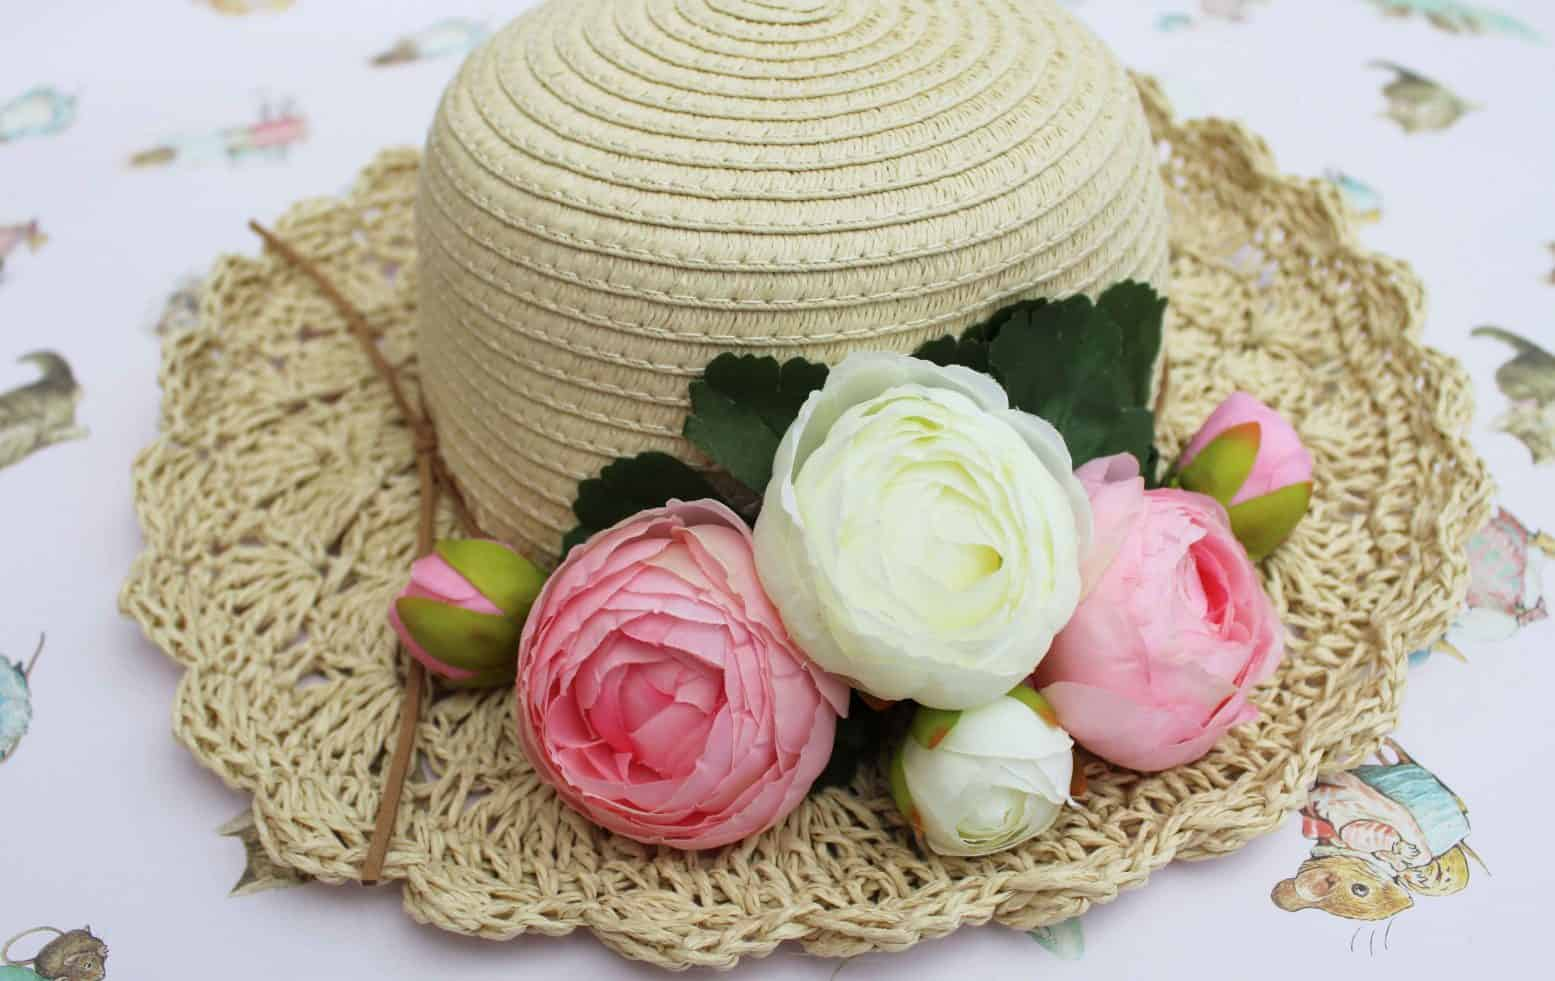 How To Decorate A Summer Straw Hat Or Easter Bonnet Yorkshire Wonders